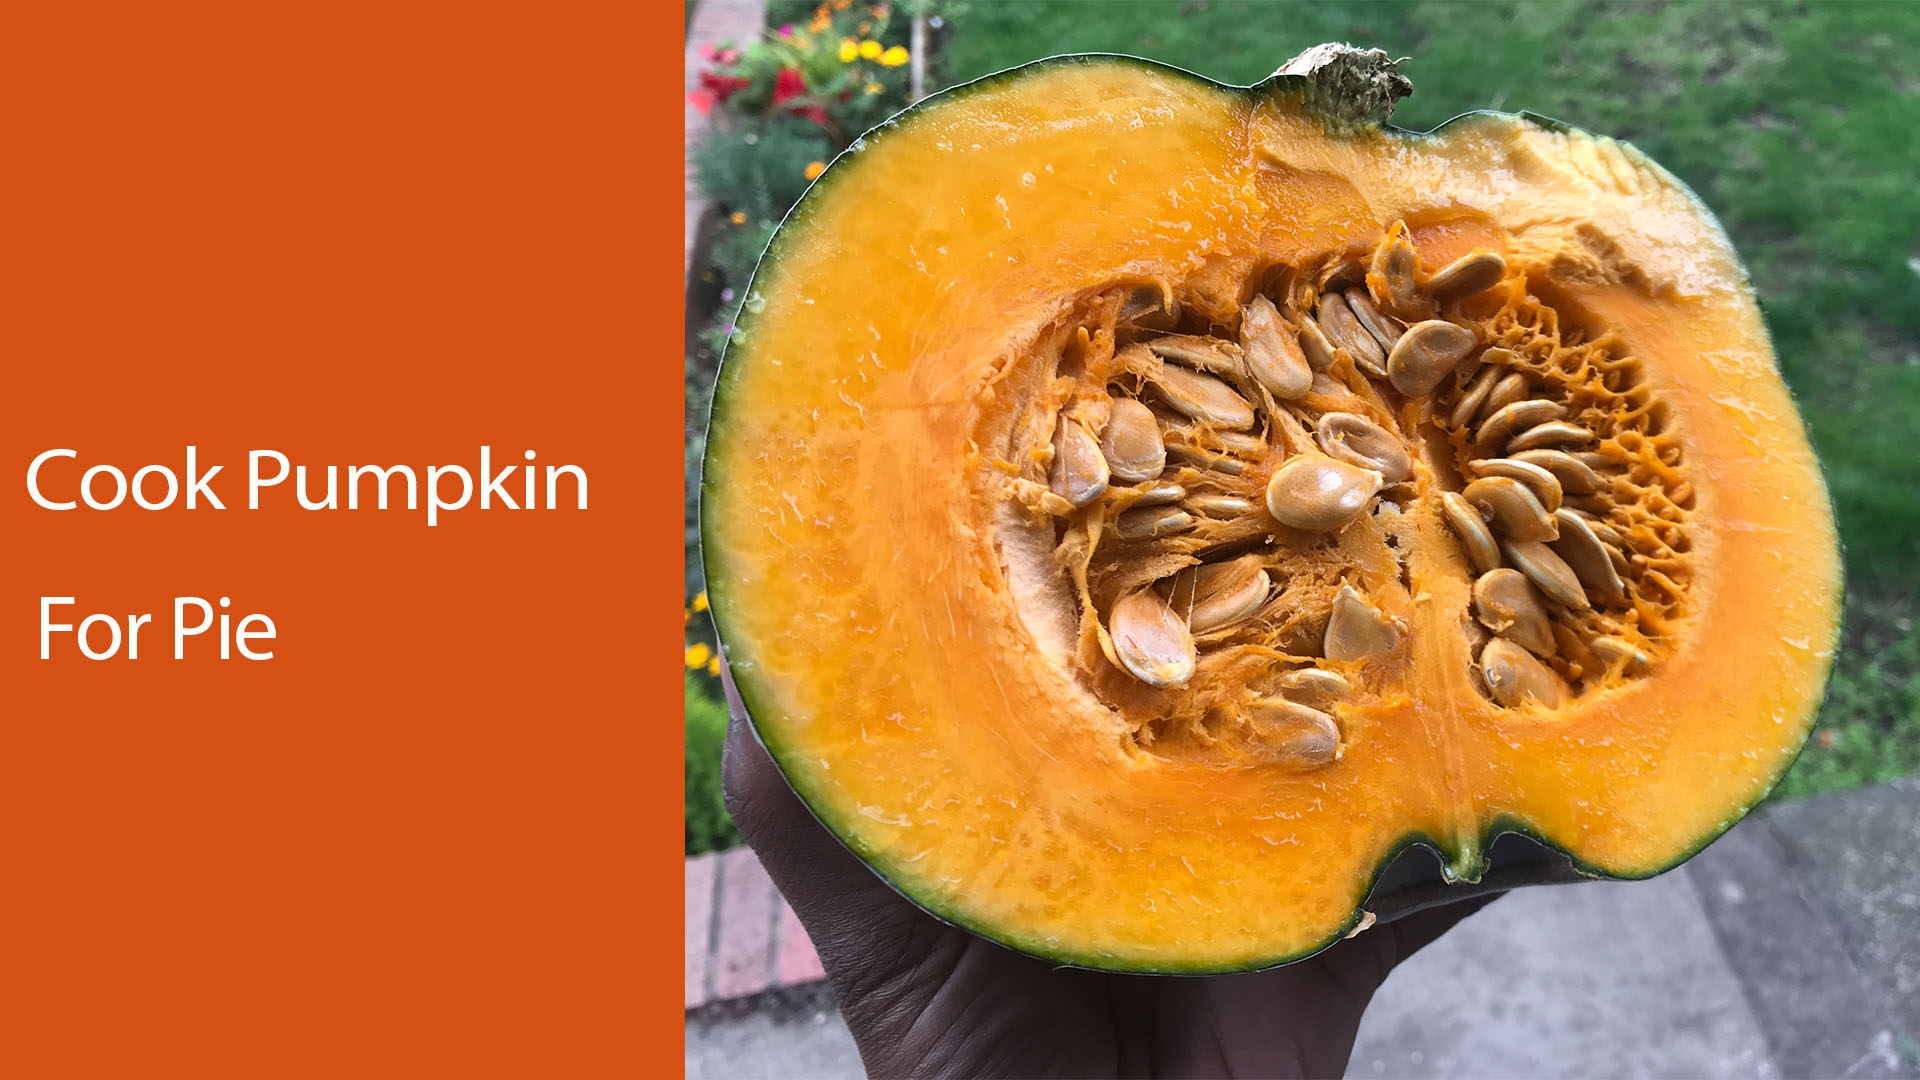 How to cook pumpkin for pie